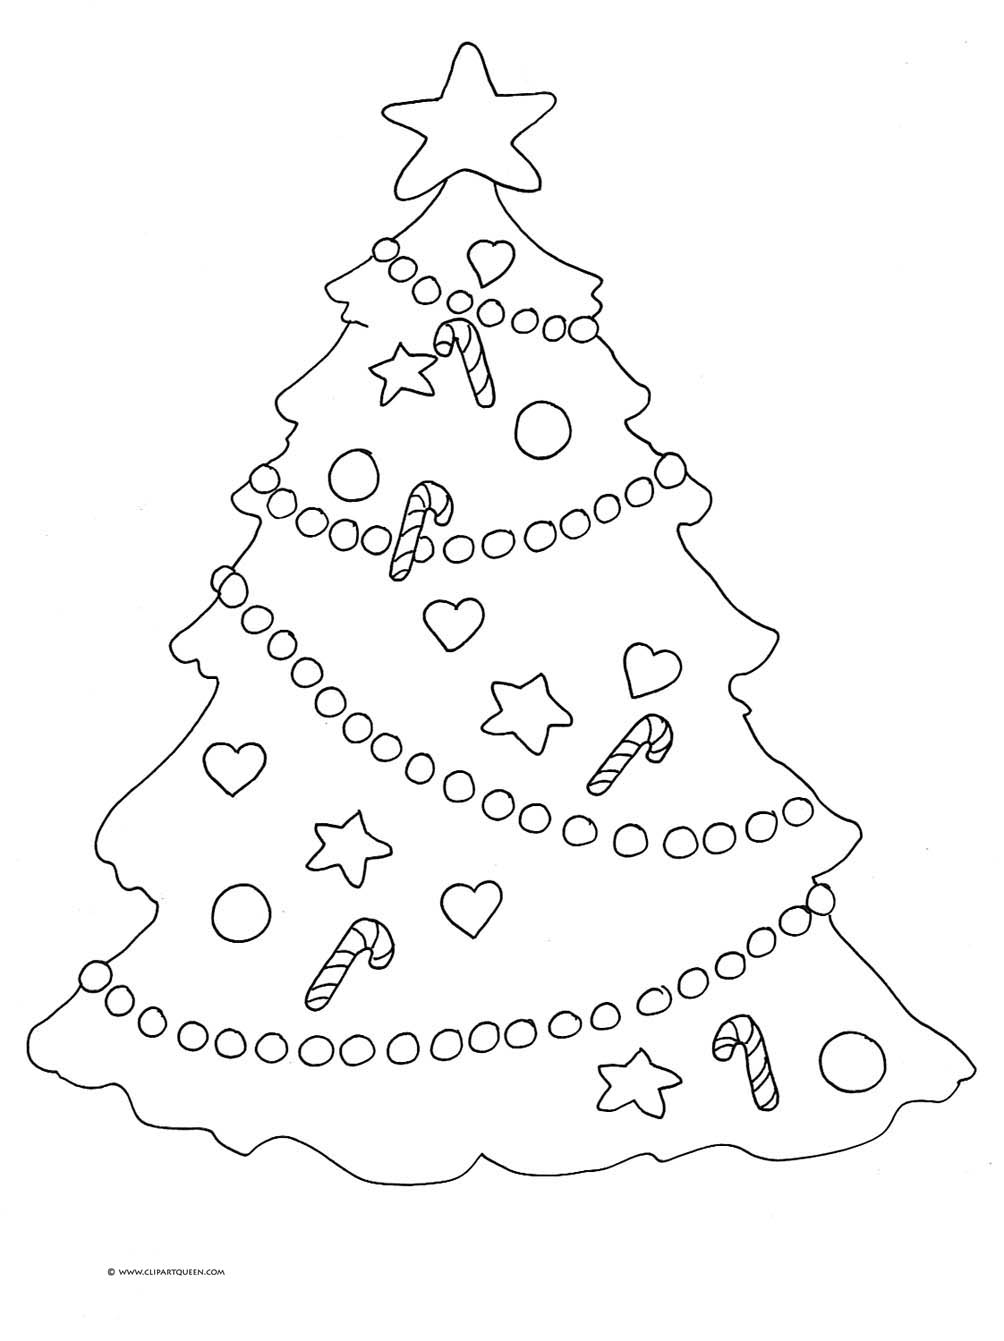 christmas tree coloring pages christmas tree coloring page wallpapers9 christmas pages tree coloring